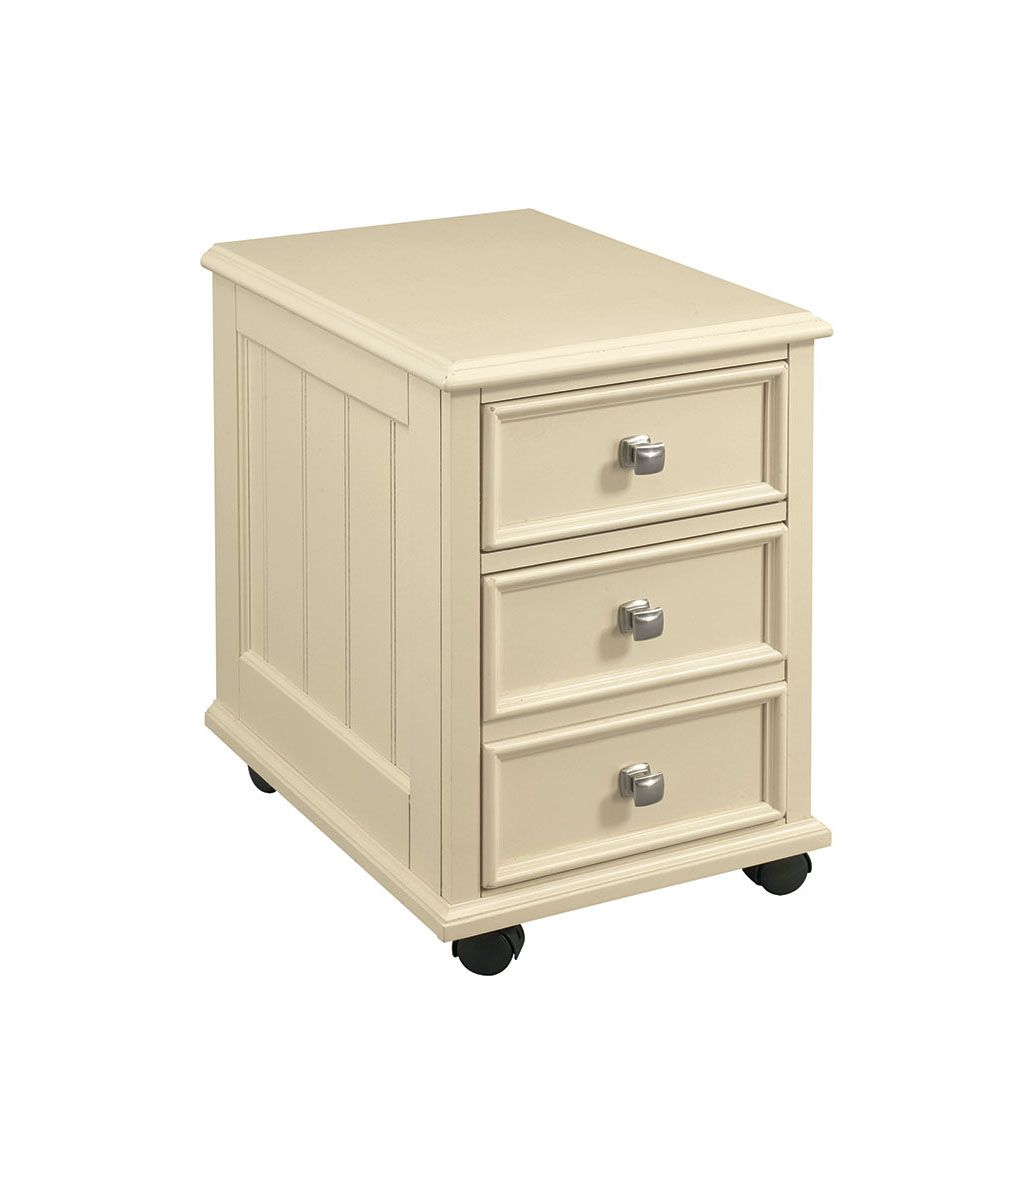 920941 By American Drew In Clarksburg Wv File Drawer Cabinet Home Office Accessories Filing Cabinet Hammary Furniture